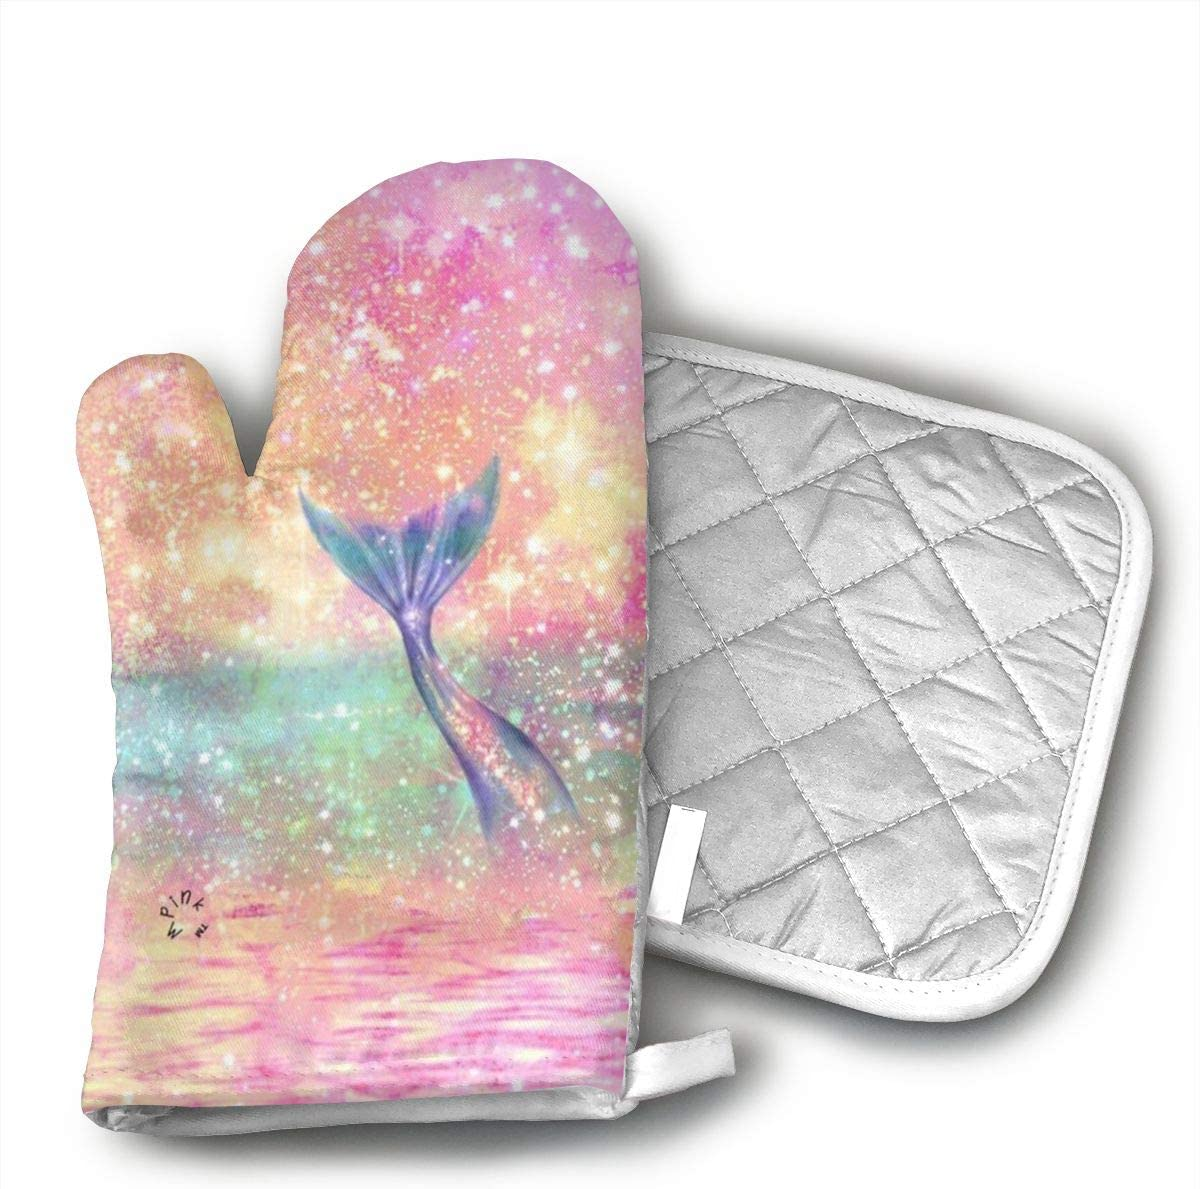 STRWBfhk Glitter Pink Mermaid Oven Mitts,Heat Resistant to 503 F,Non Slip Kitchen Oven Gloves for Cooking,Baking,Grilling,Barbecue Potholders